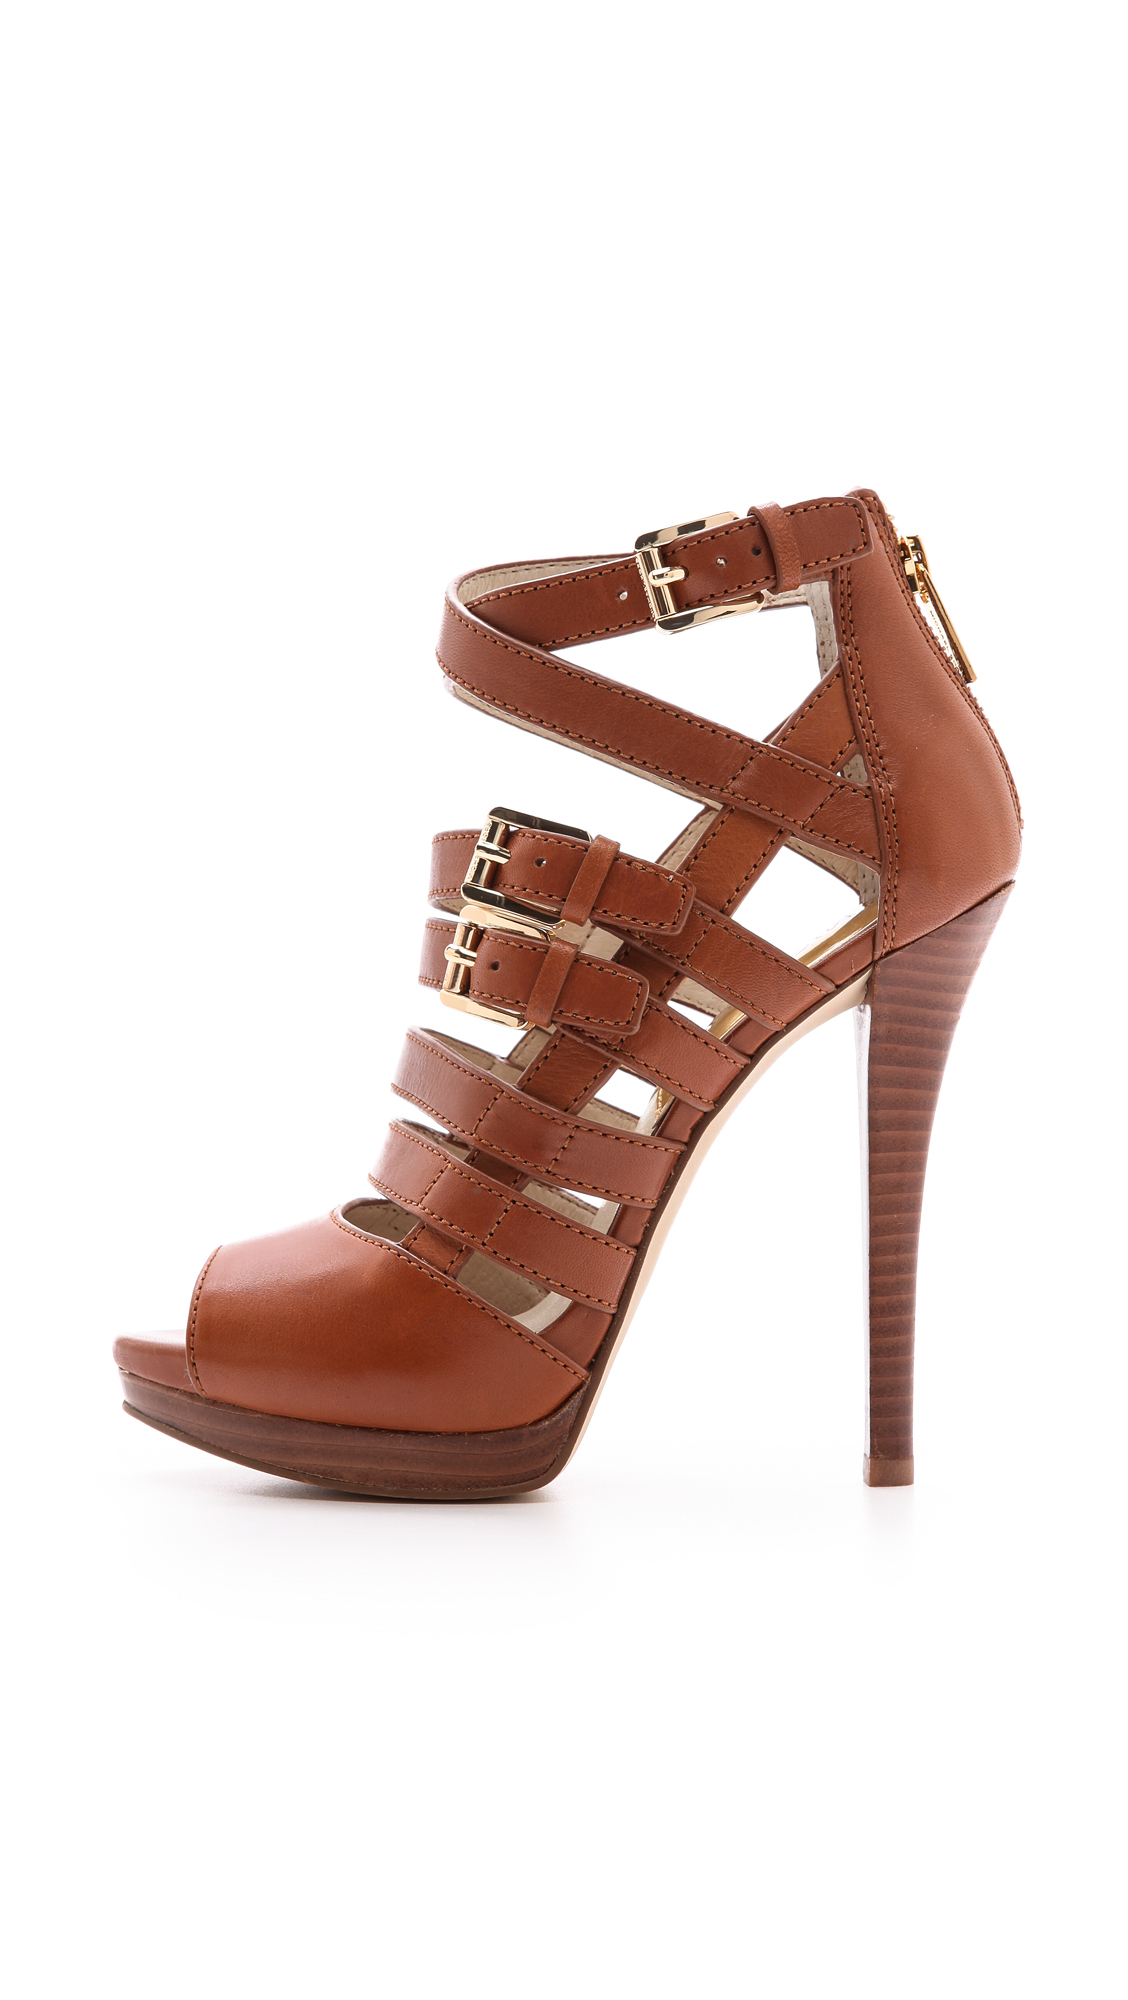 141f921c5a1 Lyst - MICHAEL Michael Kors Sandra Platform Sandals Luggage in Brown